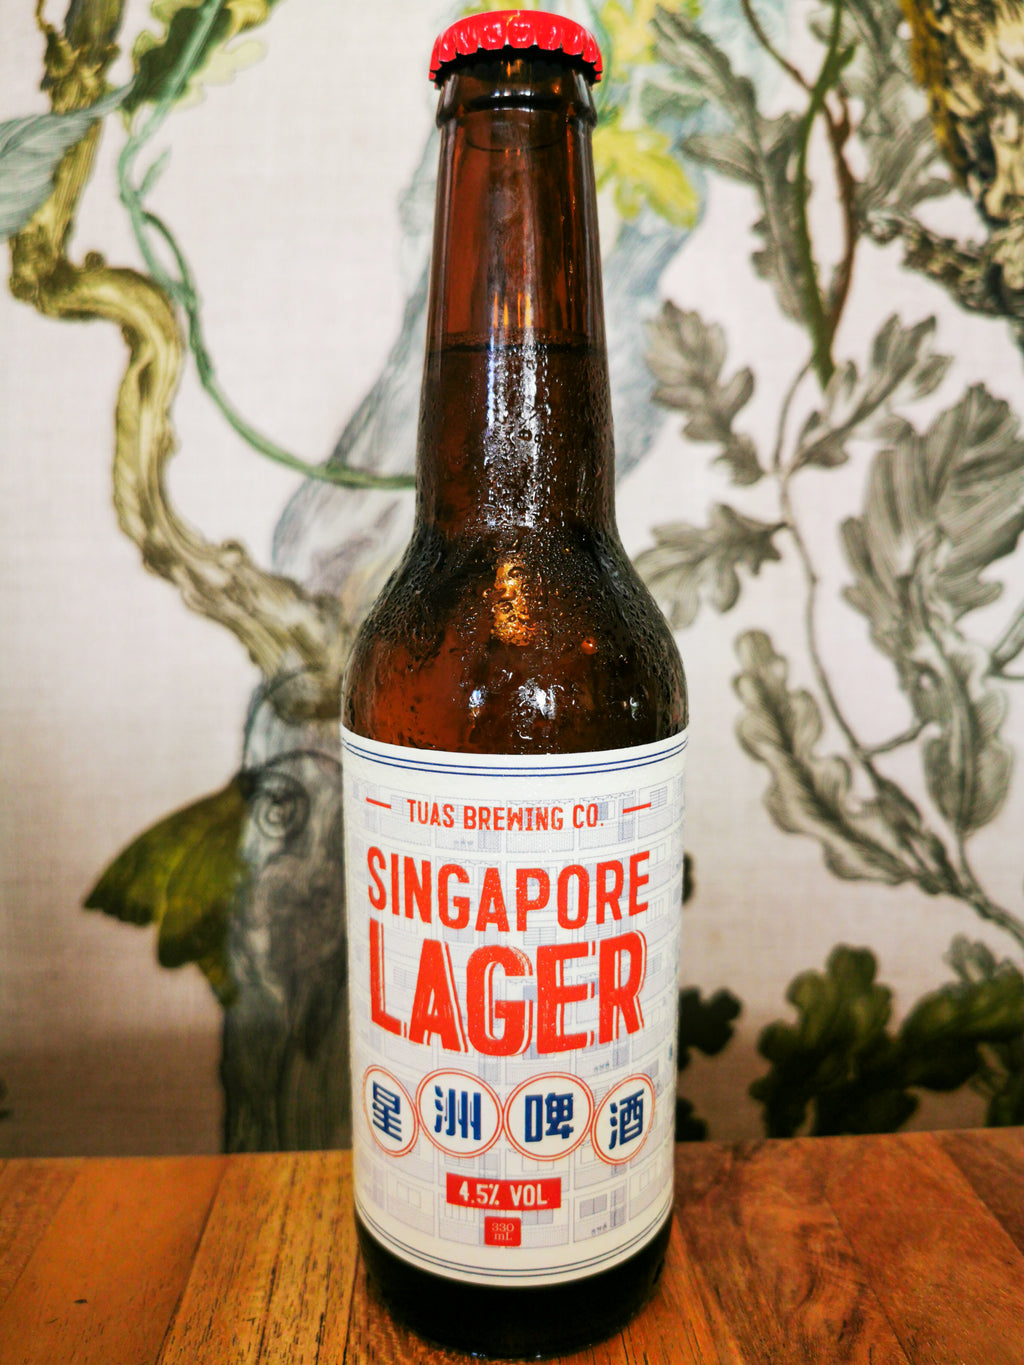 Singapore Lager - rabbit-carrot-gun-market.com